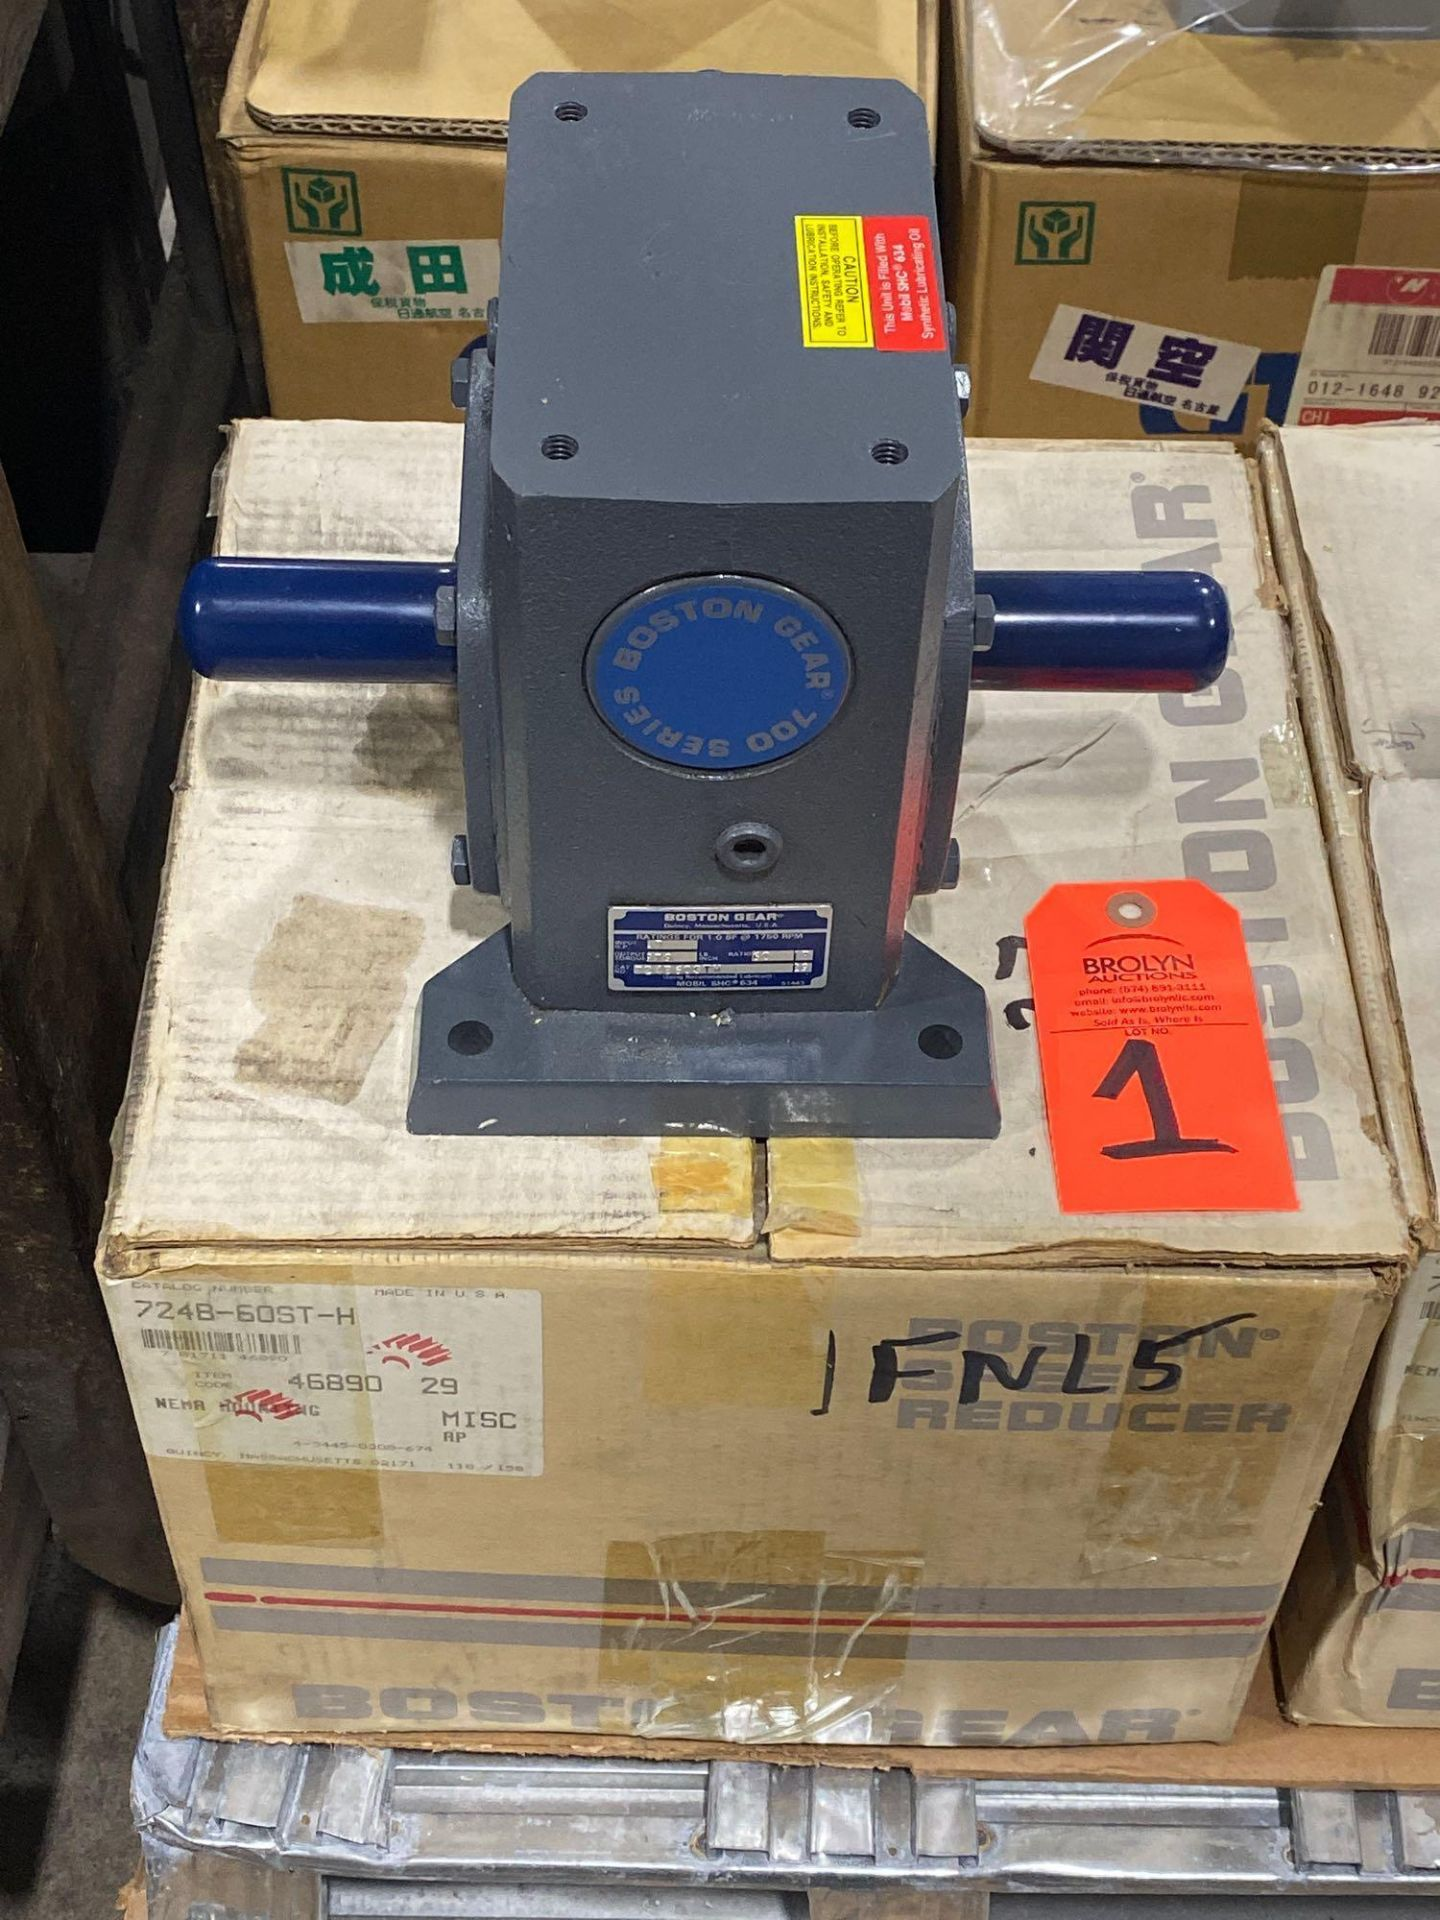 Lot 1 - Boston Gear catalog 724B-60ST-H gear box. New in box as pictured.